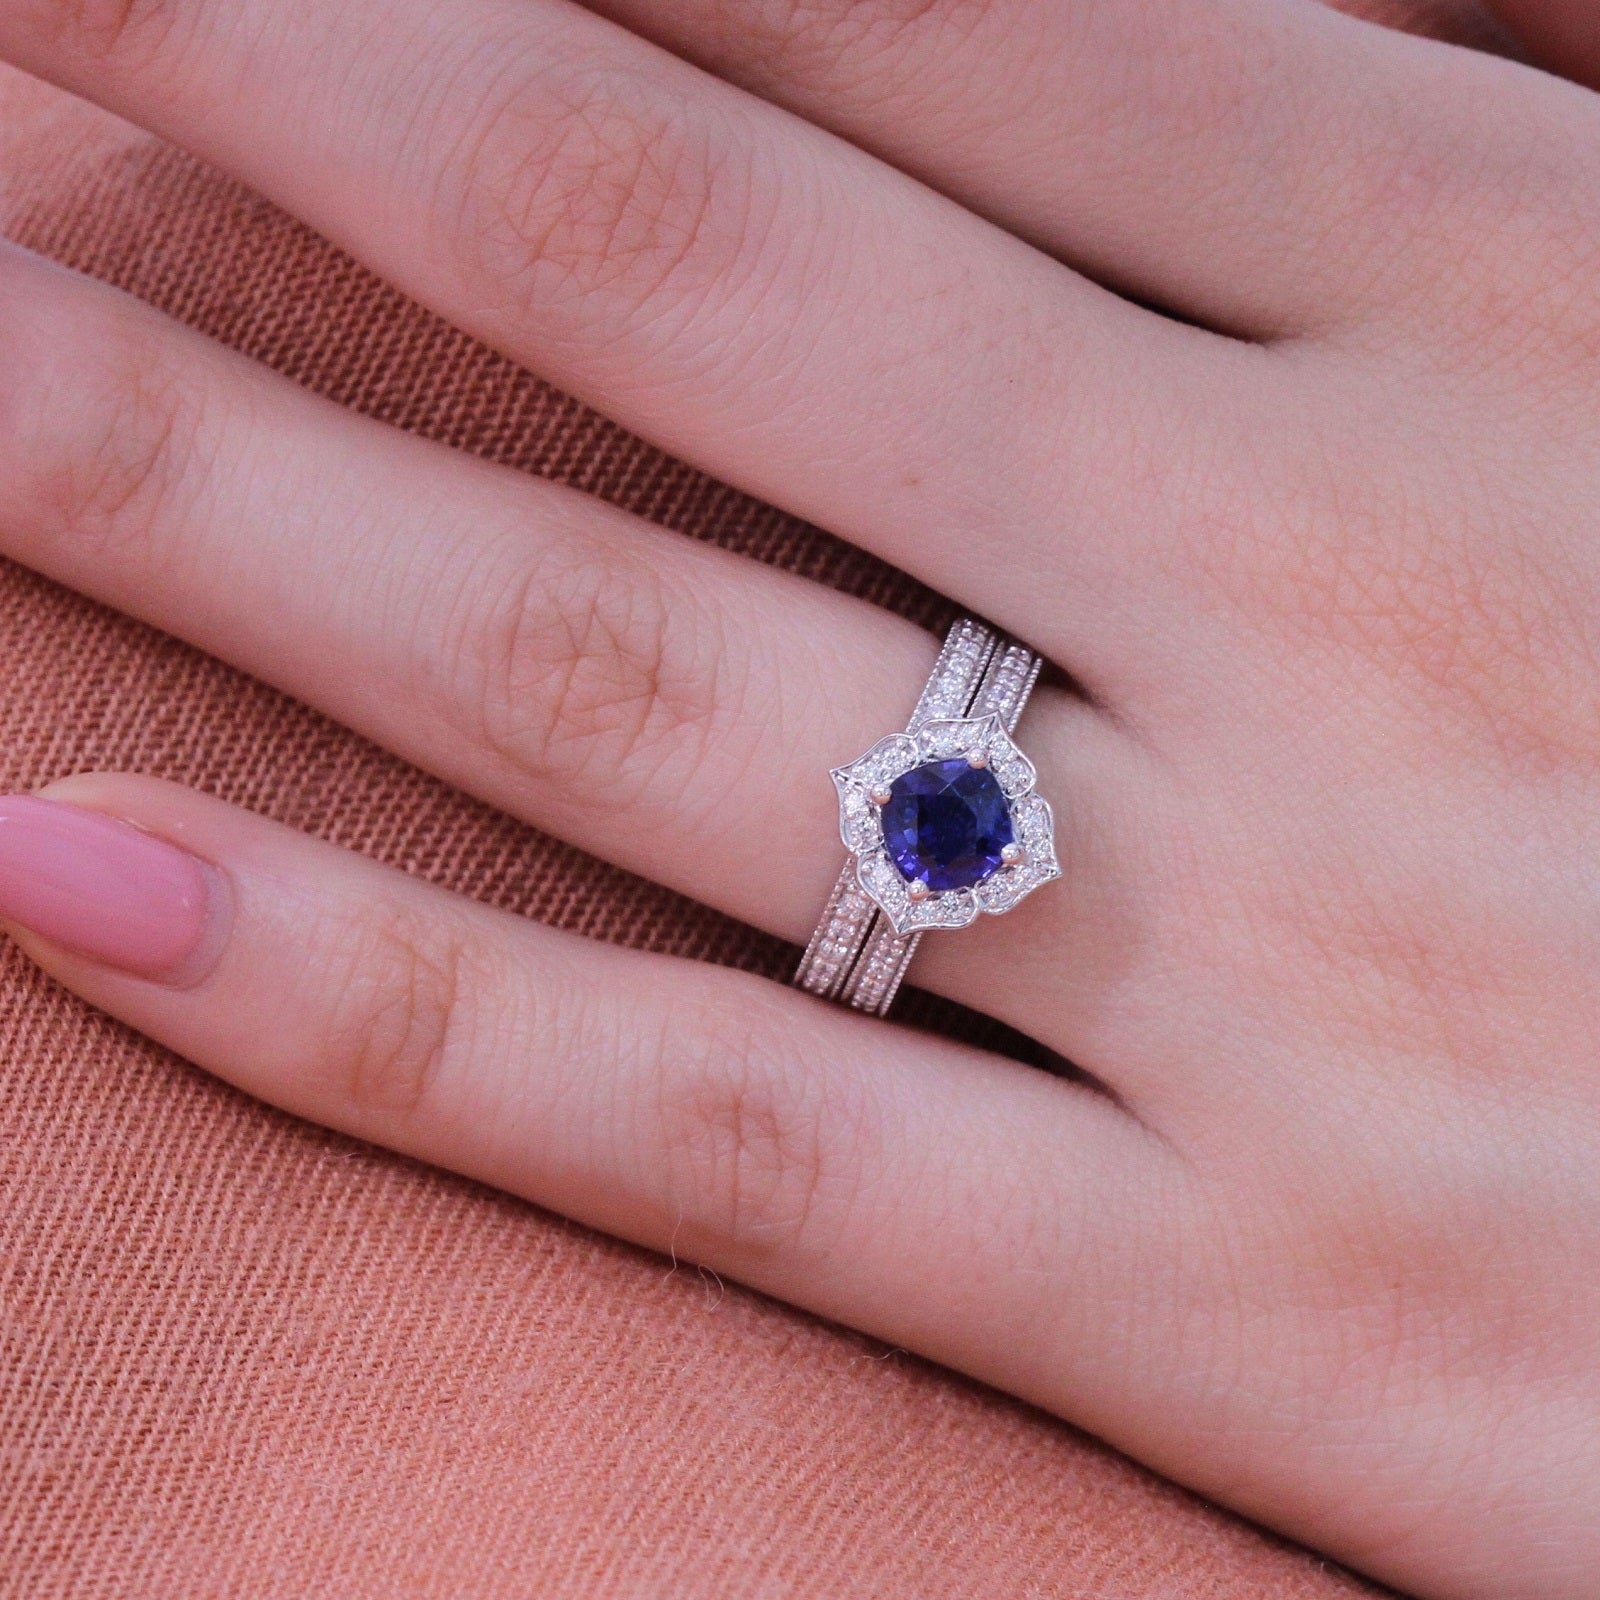 Natural Blue Sapphire Ring Bridal Set in 14k White Gold Vintage ...